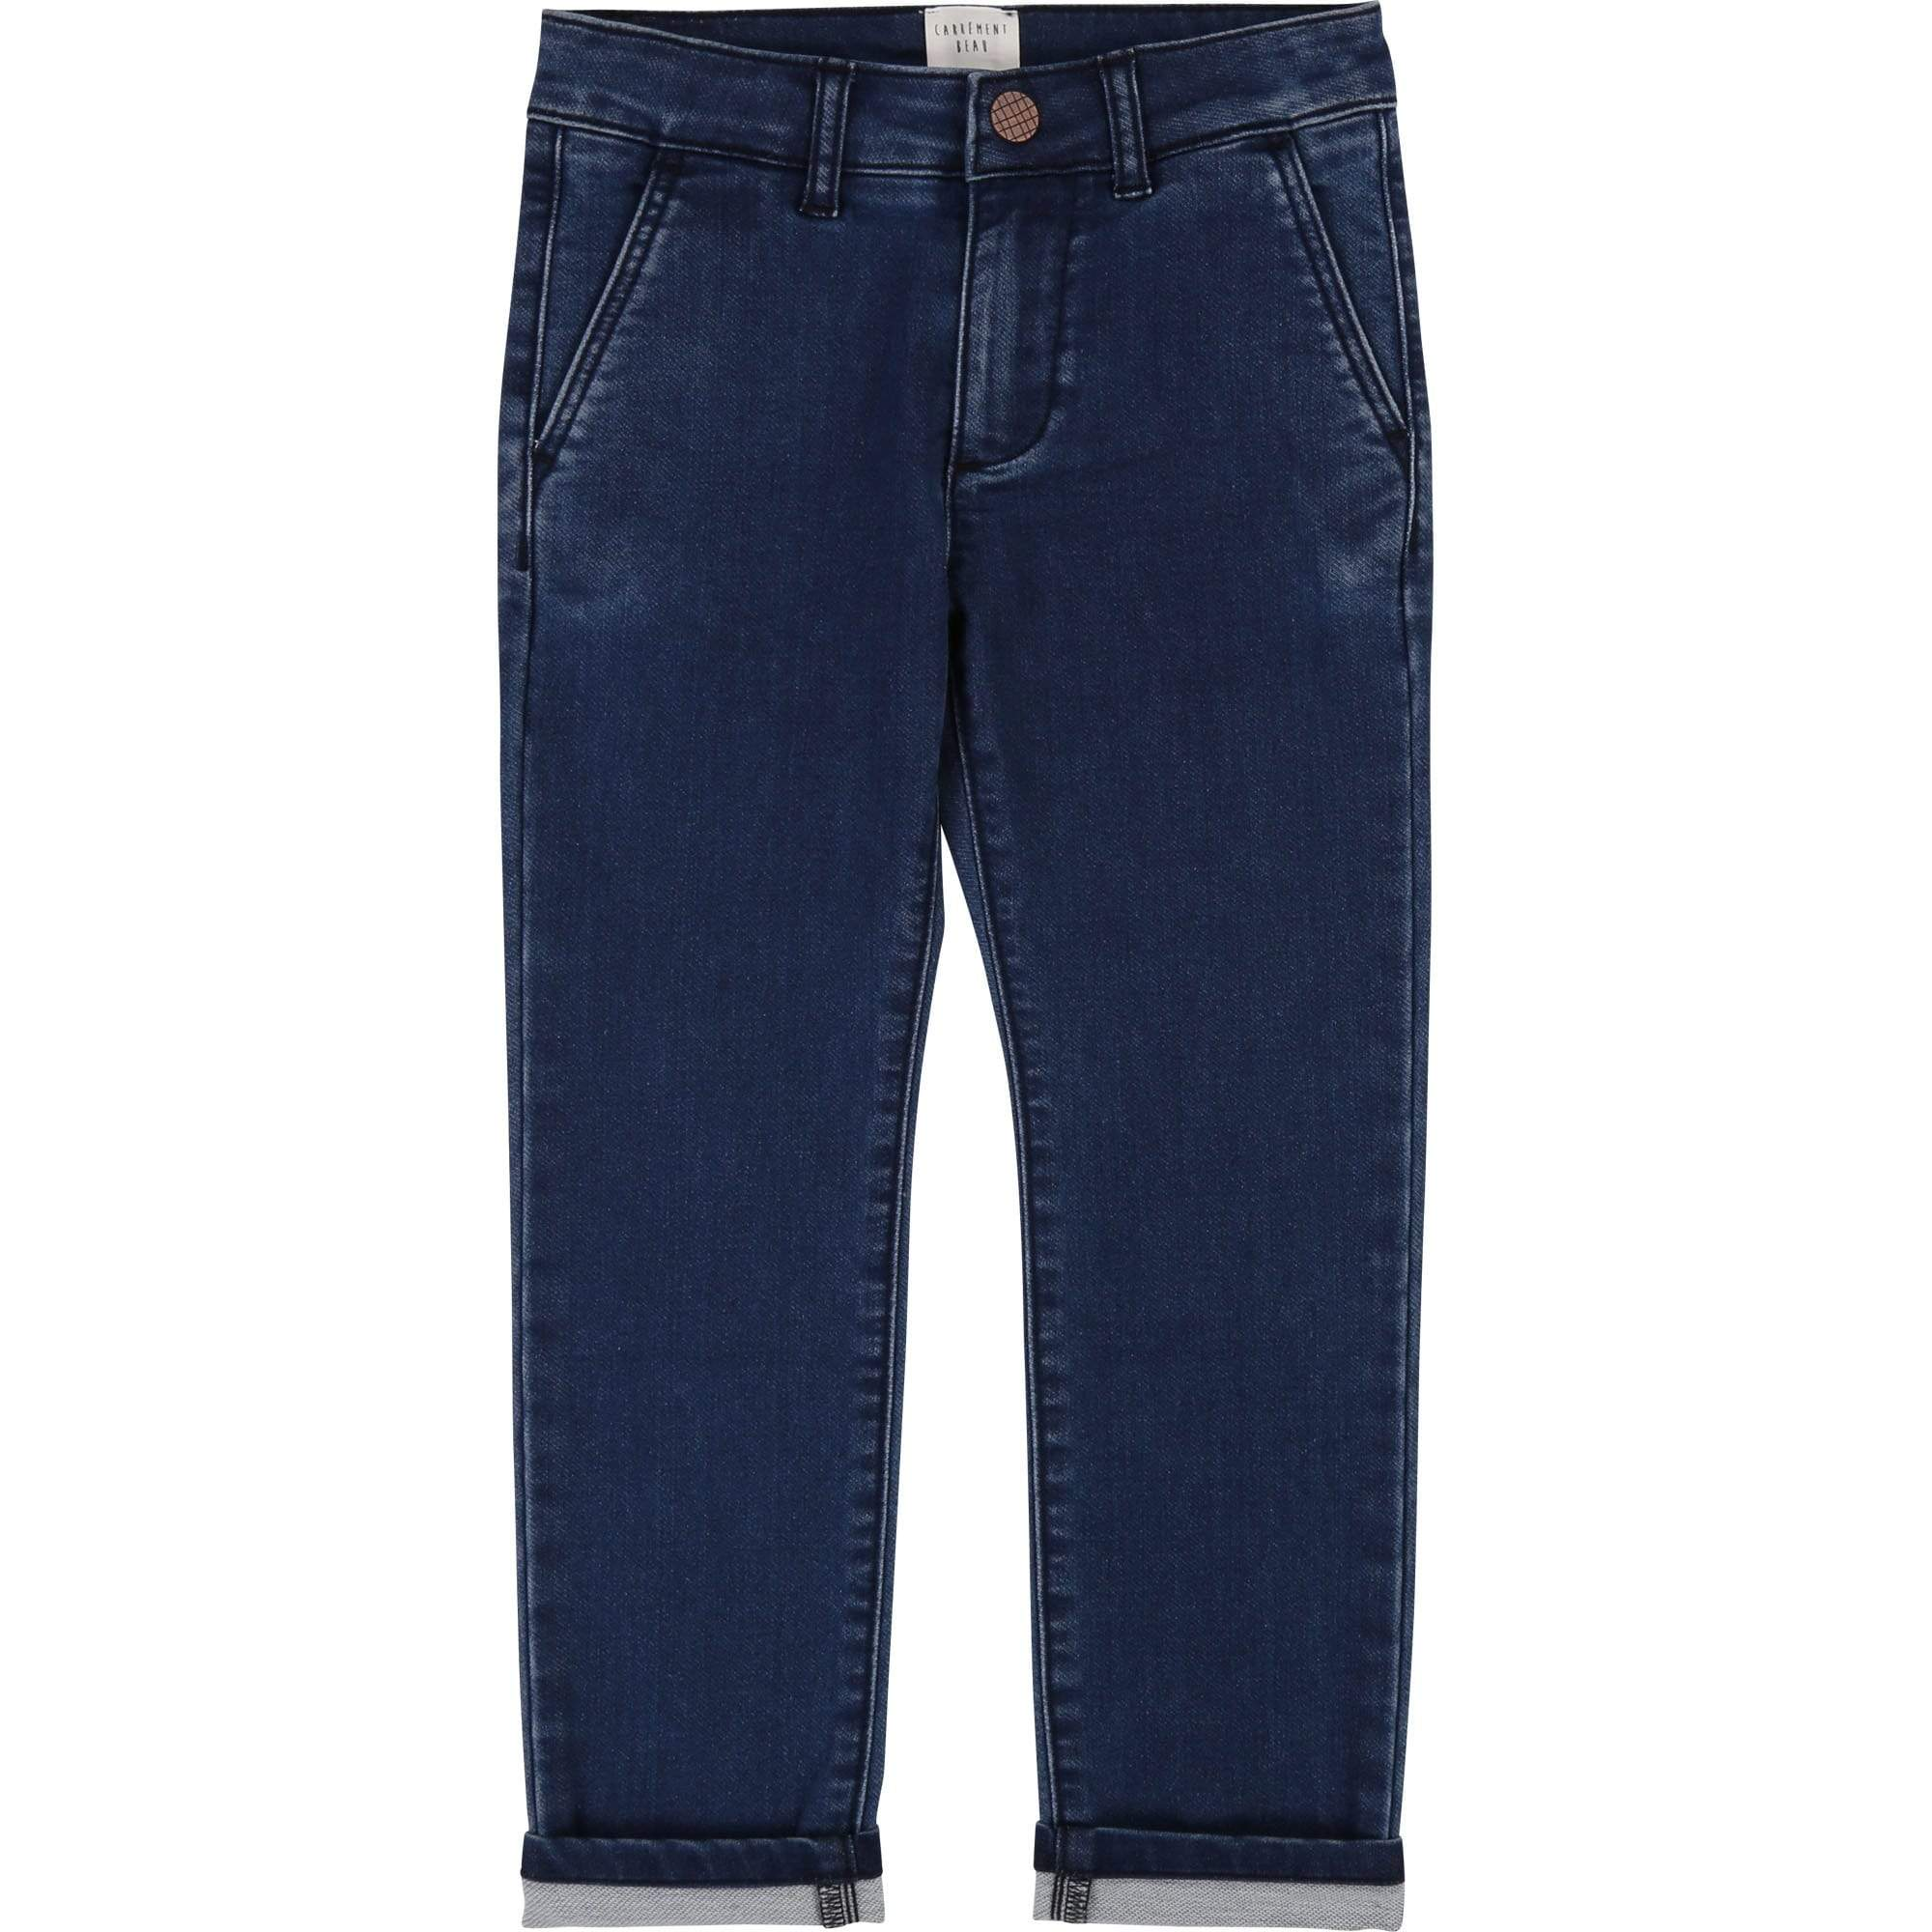 Carrément Beau Pantalons 4Y / Bleu Pantalon chino en denim maille stretch